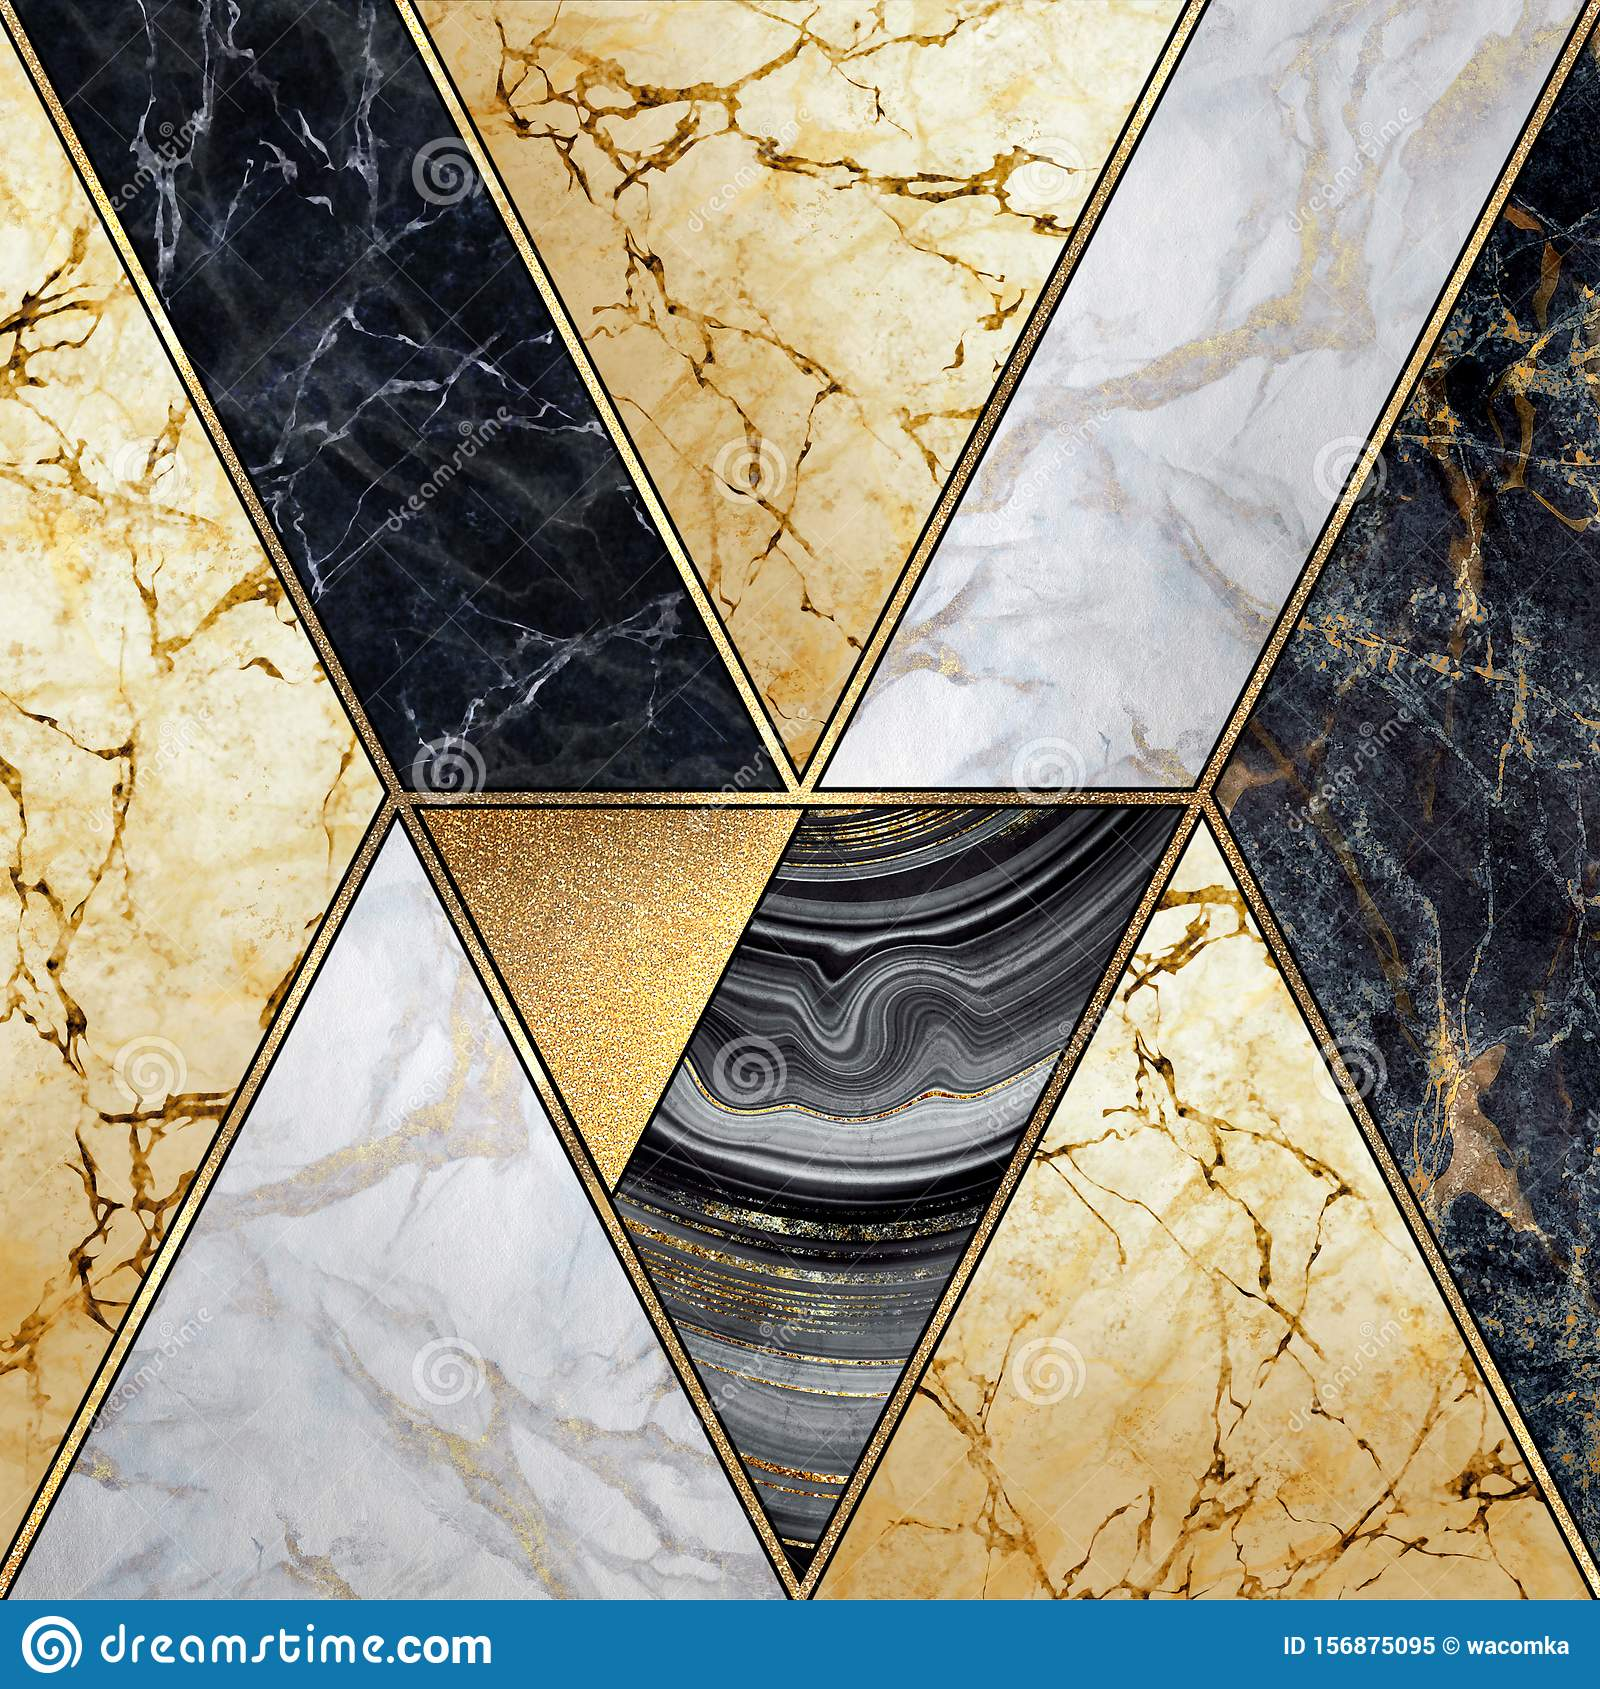 https www dreamstime com abstract art deco geometric background modern mosaic inlay creative textures marble granite agate gold artistic artificial image156875095